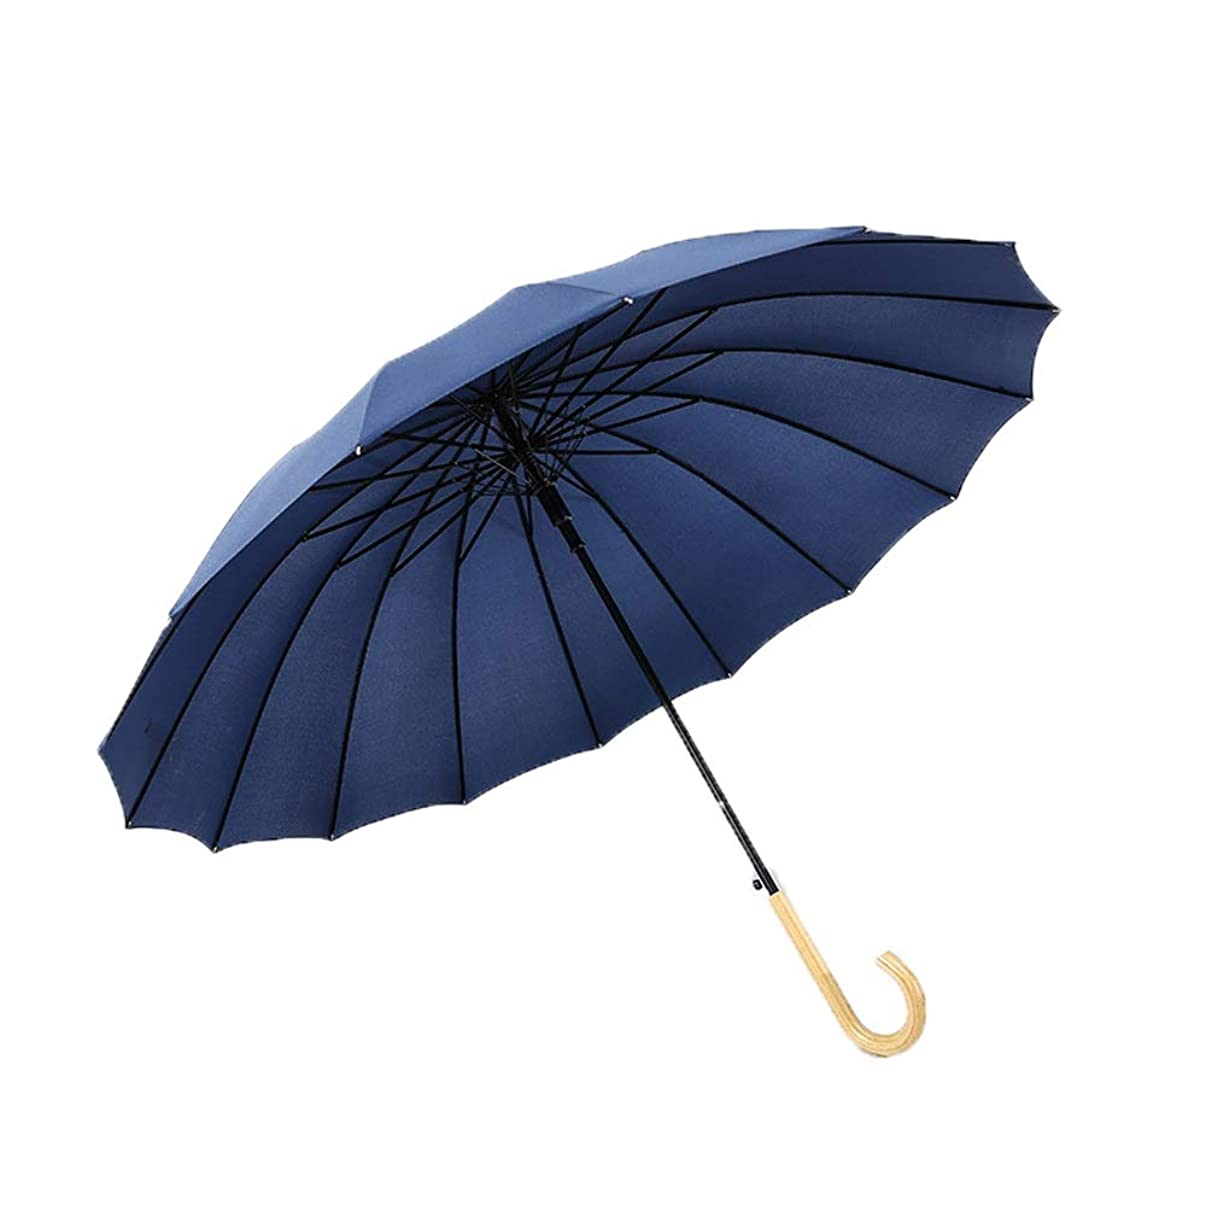 Windproof Long Handle Straight Umbrella,16 Ribs for Super-Strength - Extra Strong - Triple Layer Reinforced Frame with Fiberglass, Umbrella Auto Open (Color : Blue)